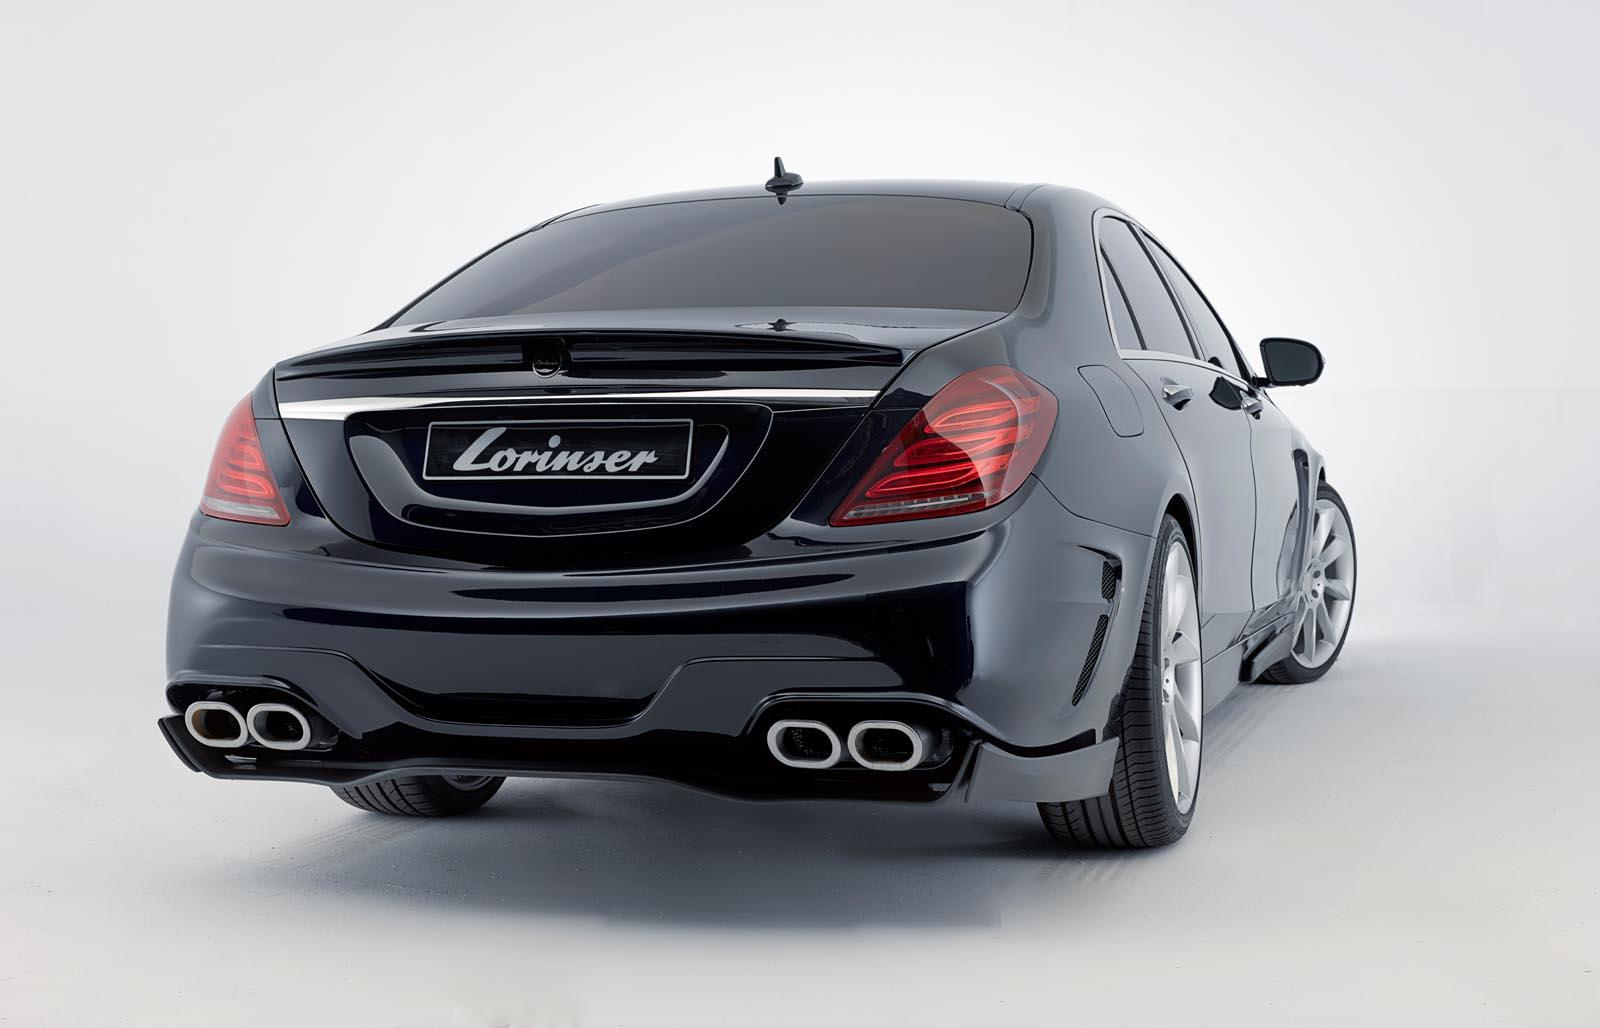 lorinser 2013 mercedes benz s class 530hp and 800nm. Black Bedroom Furniture Sets. Home Design Ideas